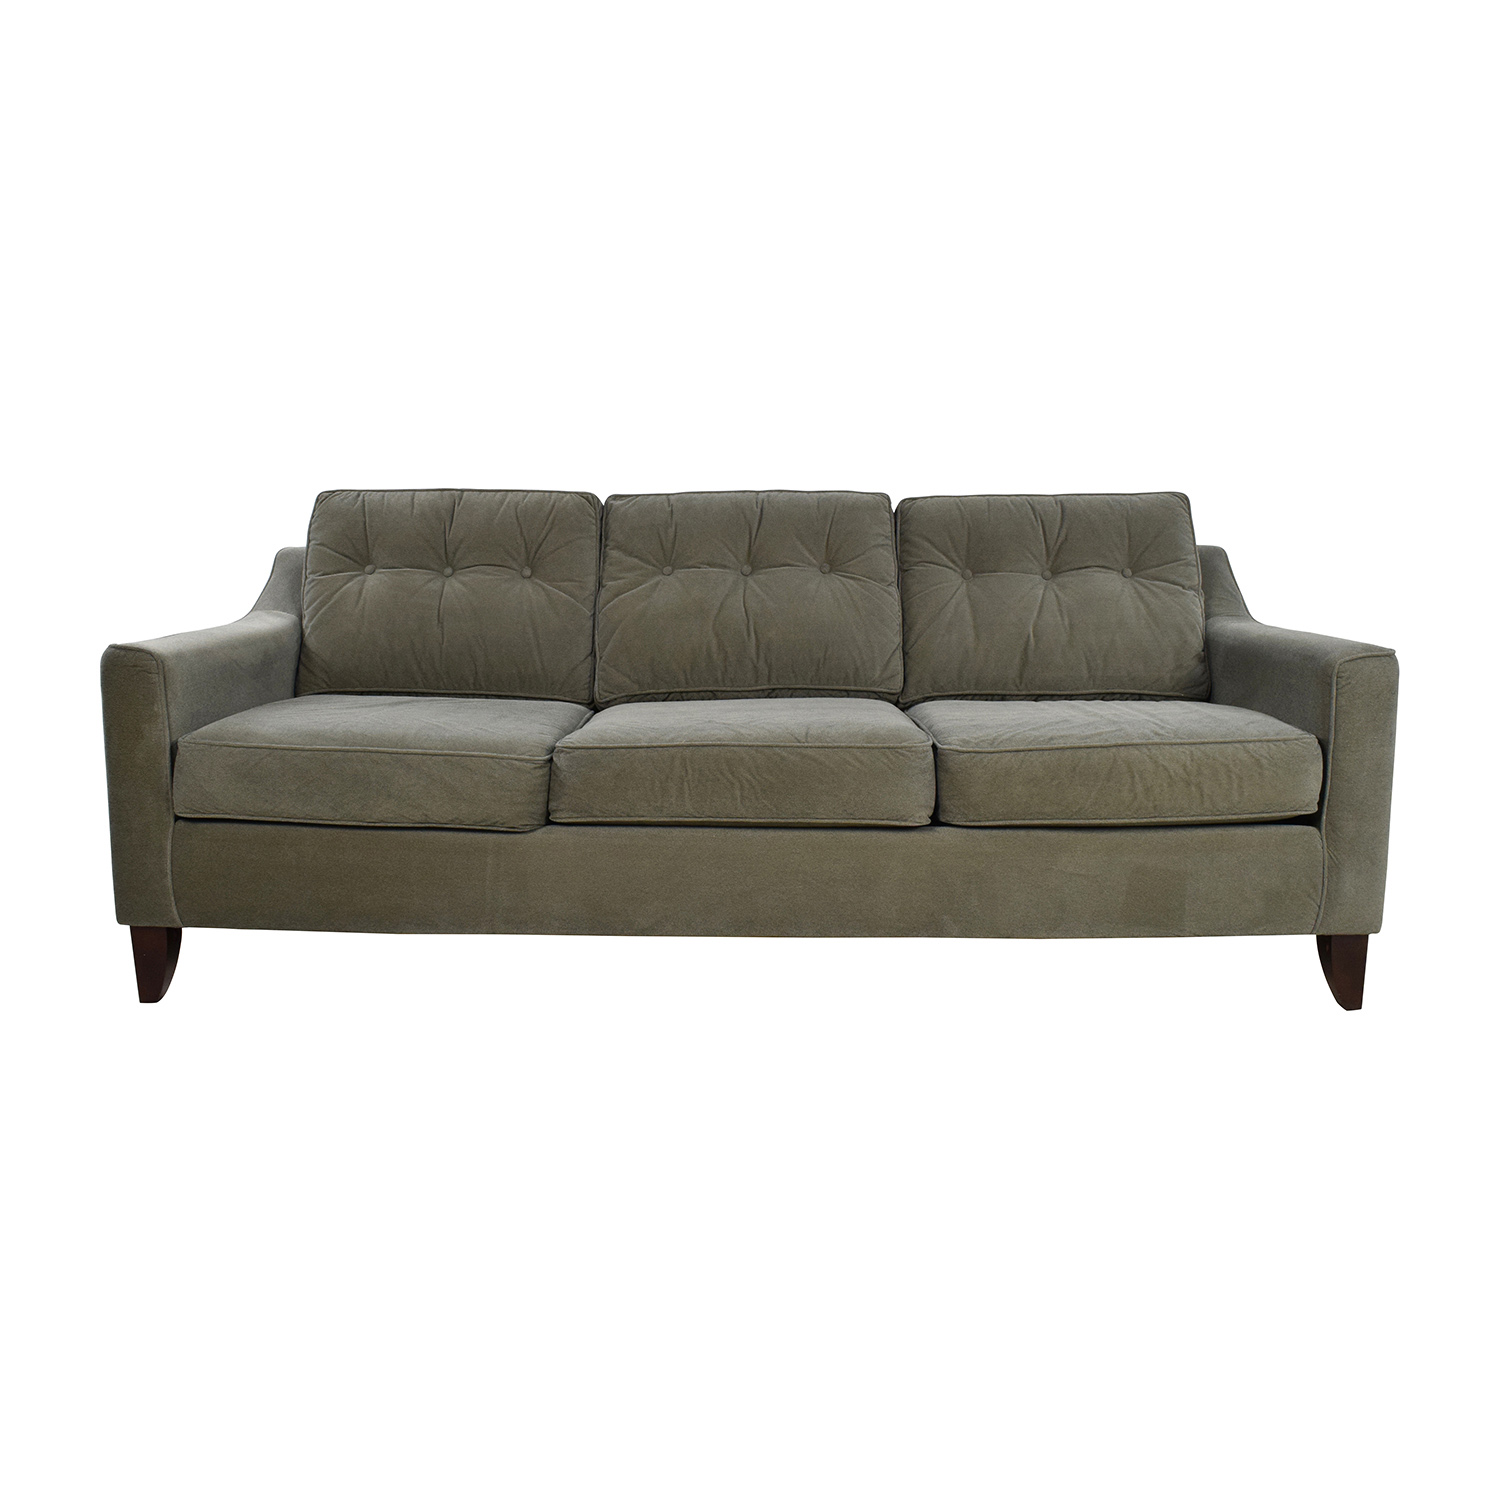 shop Stylecraft Designs Stylecraft Designs Alexis Sofa in Grey online